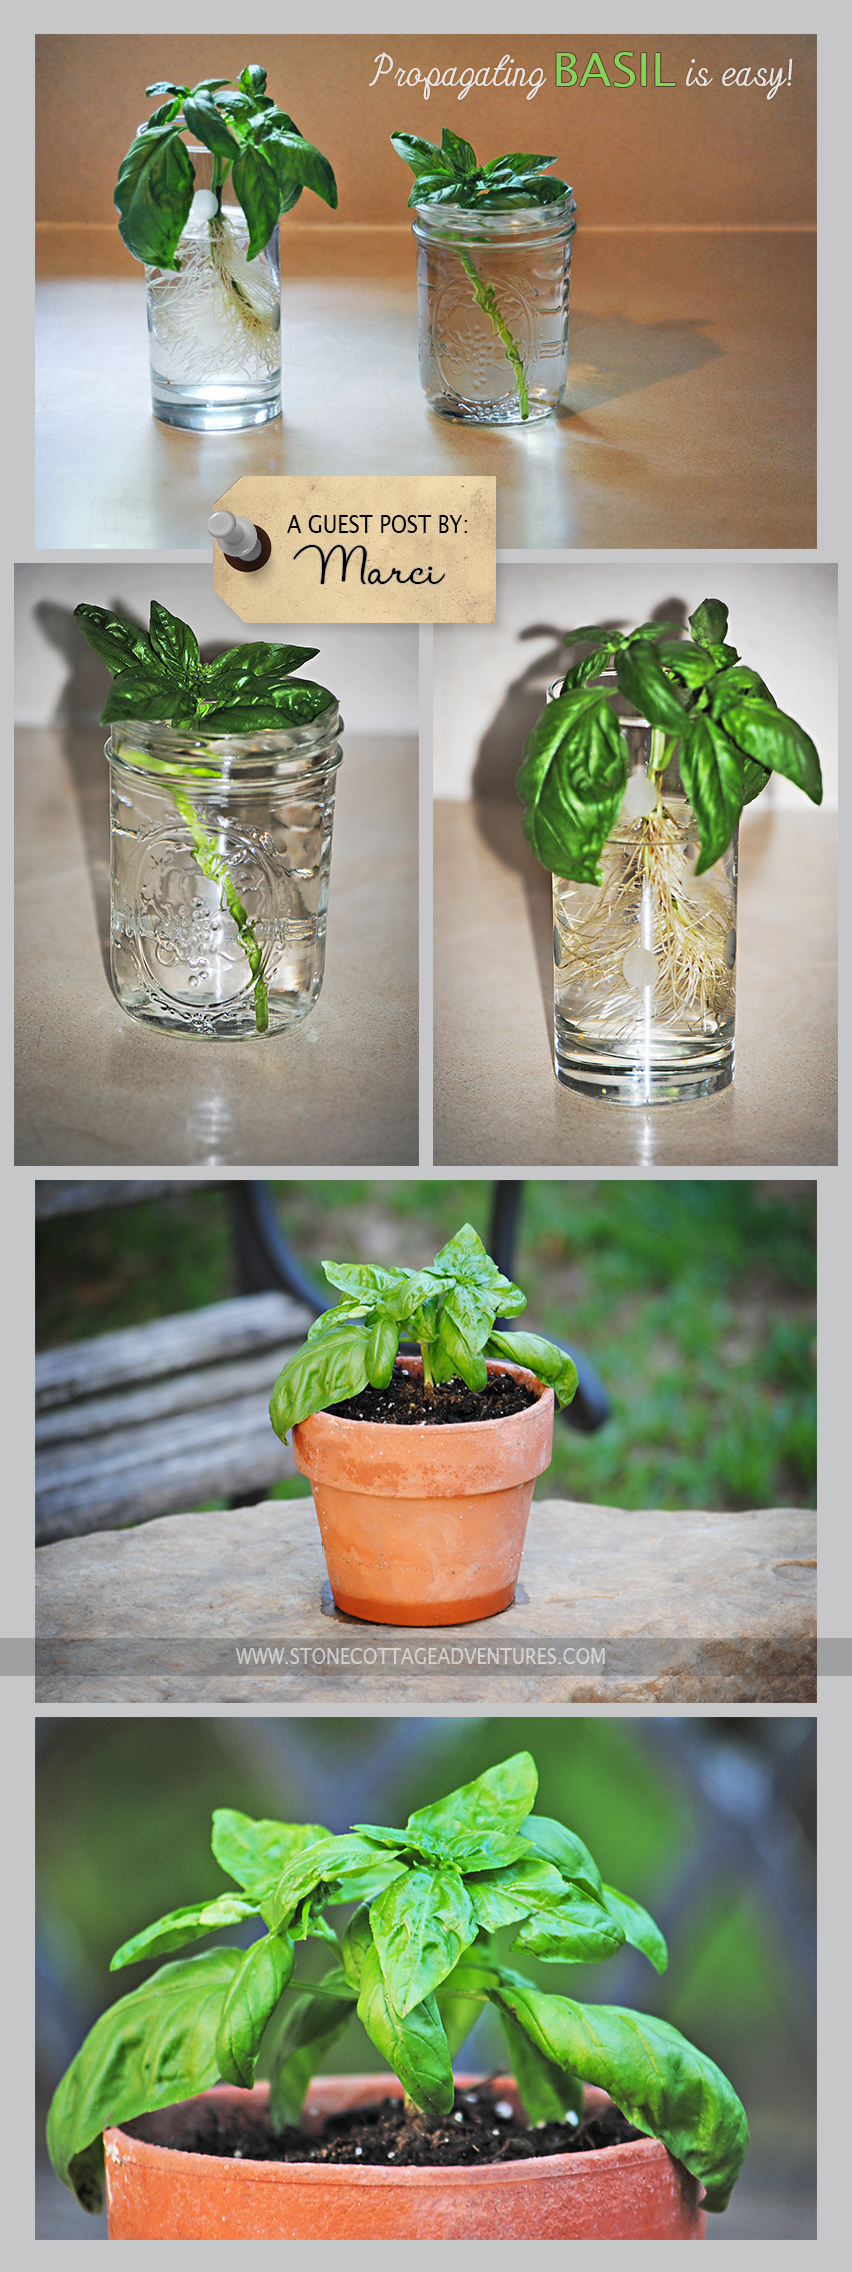 propagating basil guest post